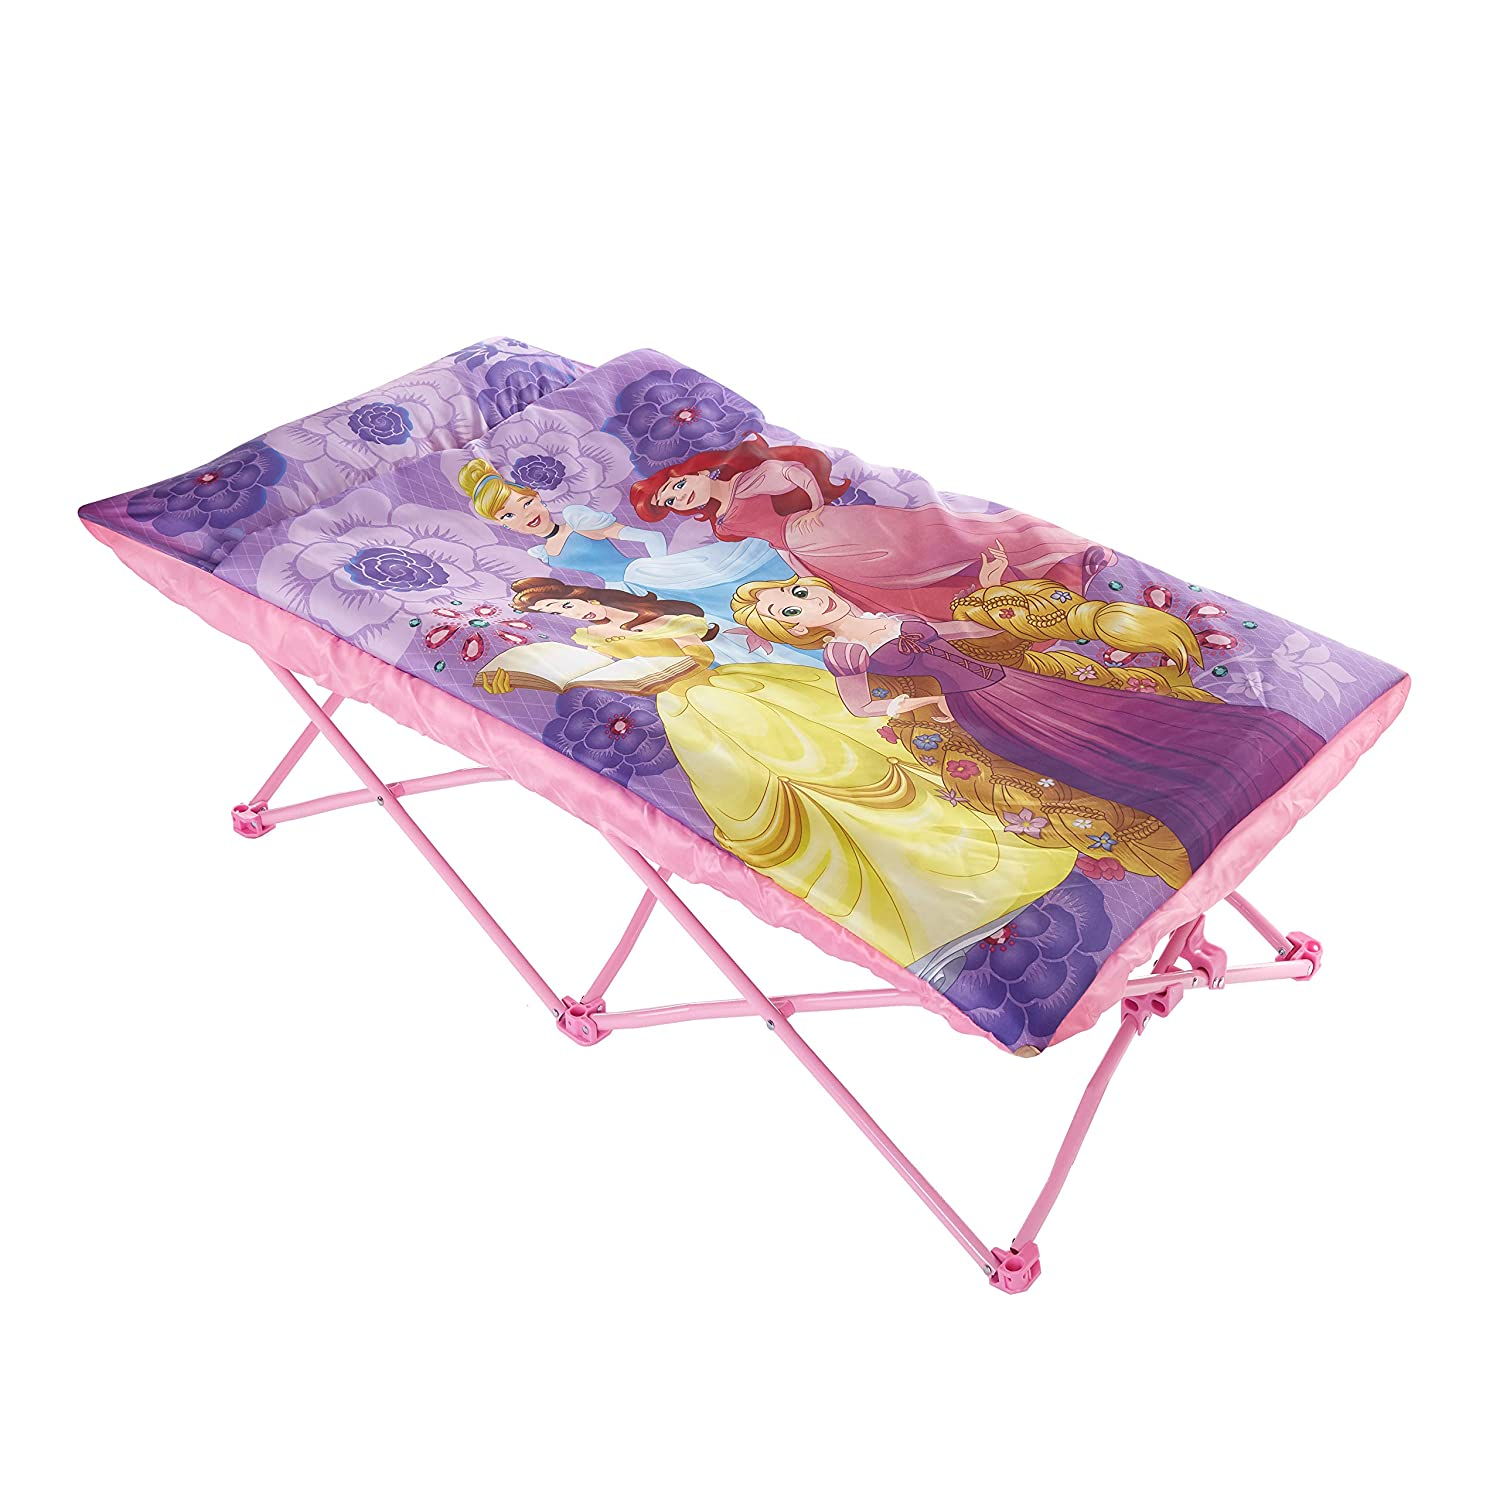 Disney NK320516 Princess Portable Slumber Cot, Purple